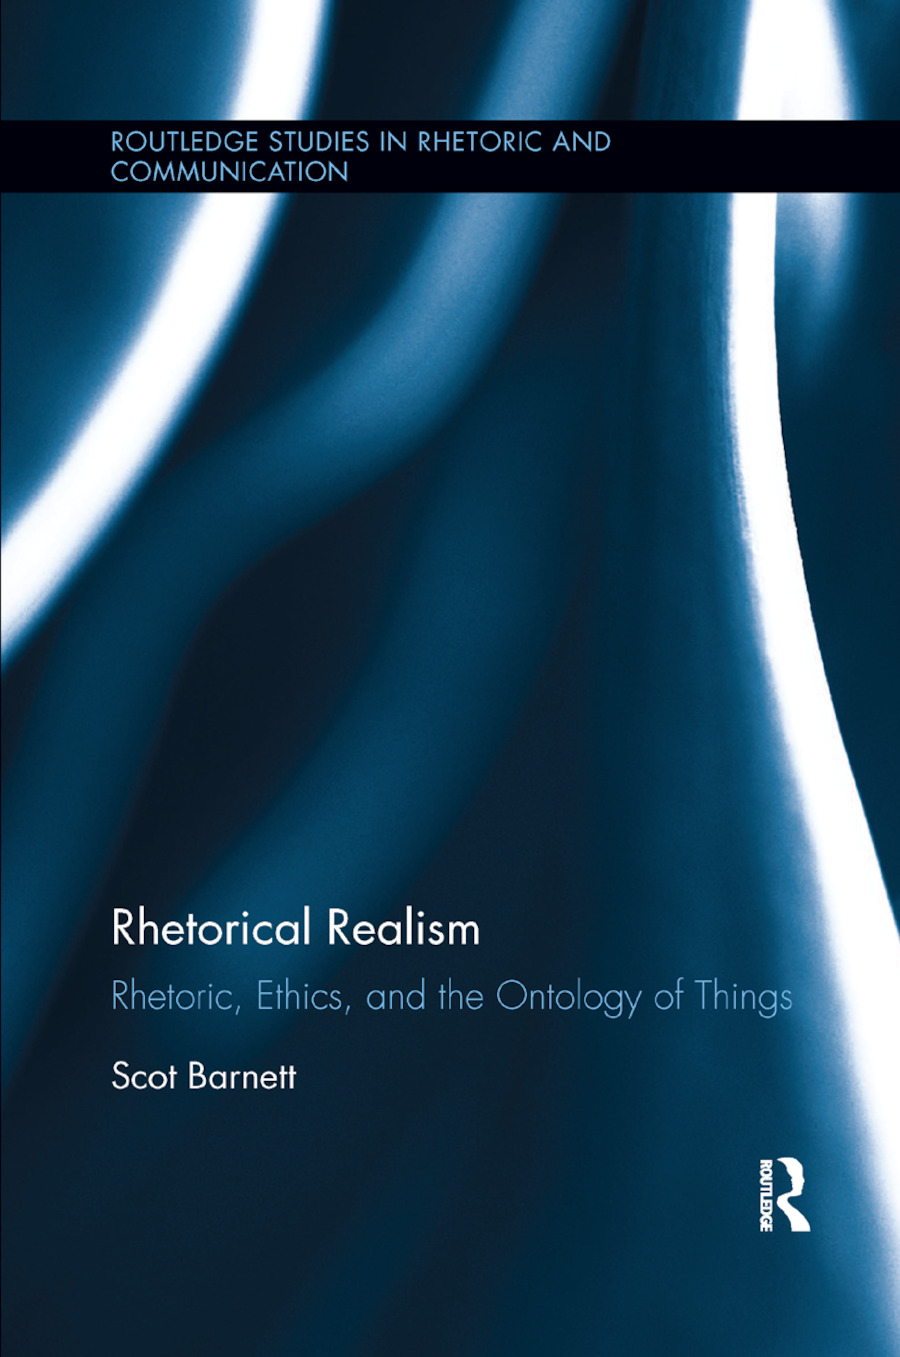 Rhetorical Realism: Rhetoric, Ethics, and the Ontology of Things book cover